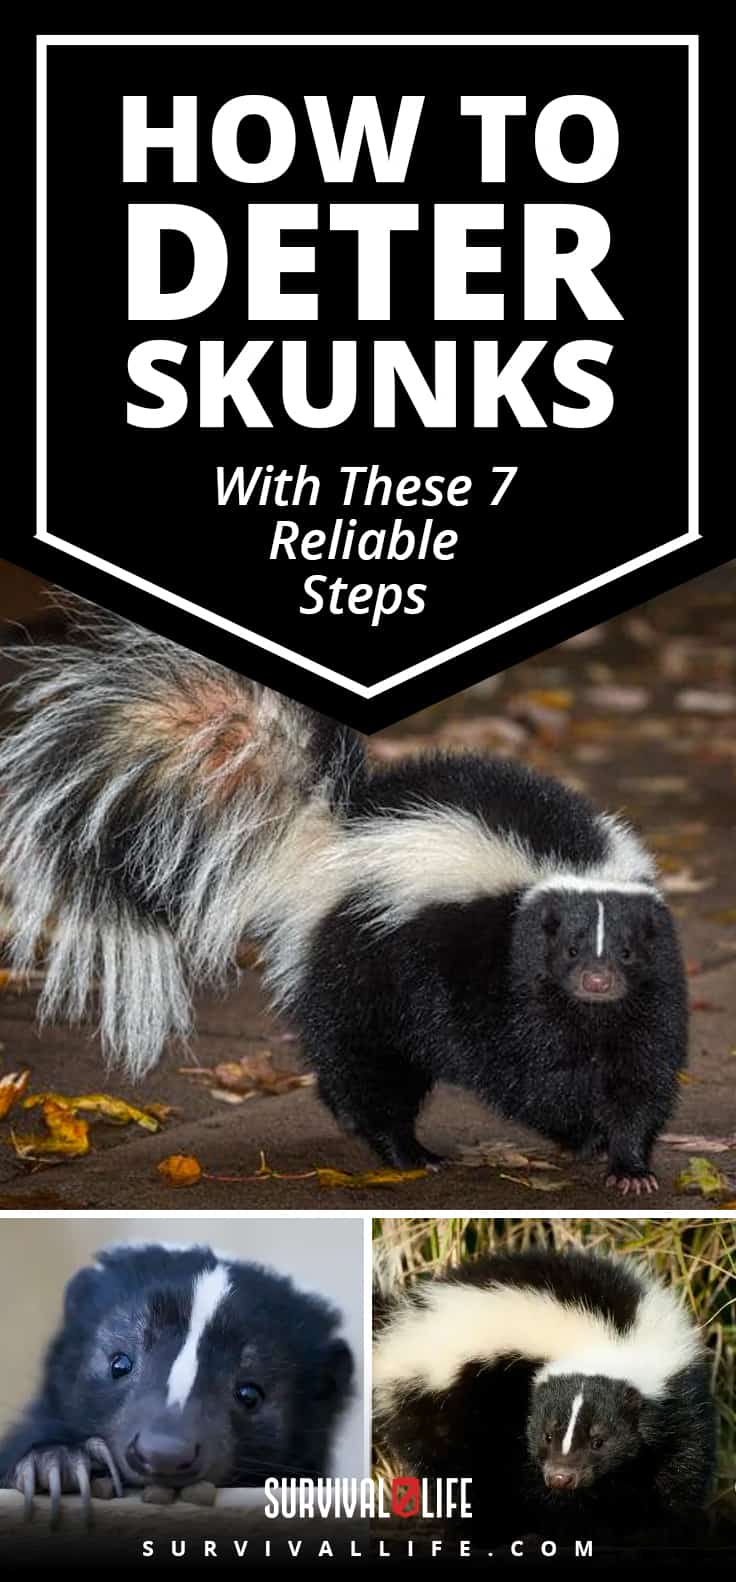 Placard | Steps to Deter Skunks | How To Deter Skunks With These 7 Reliable Steps